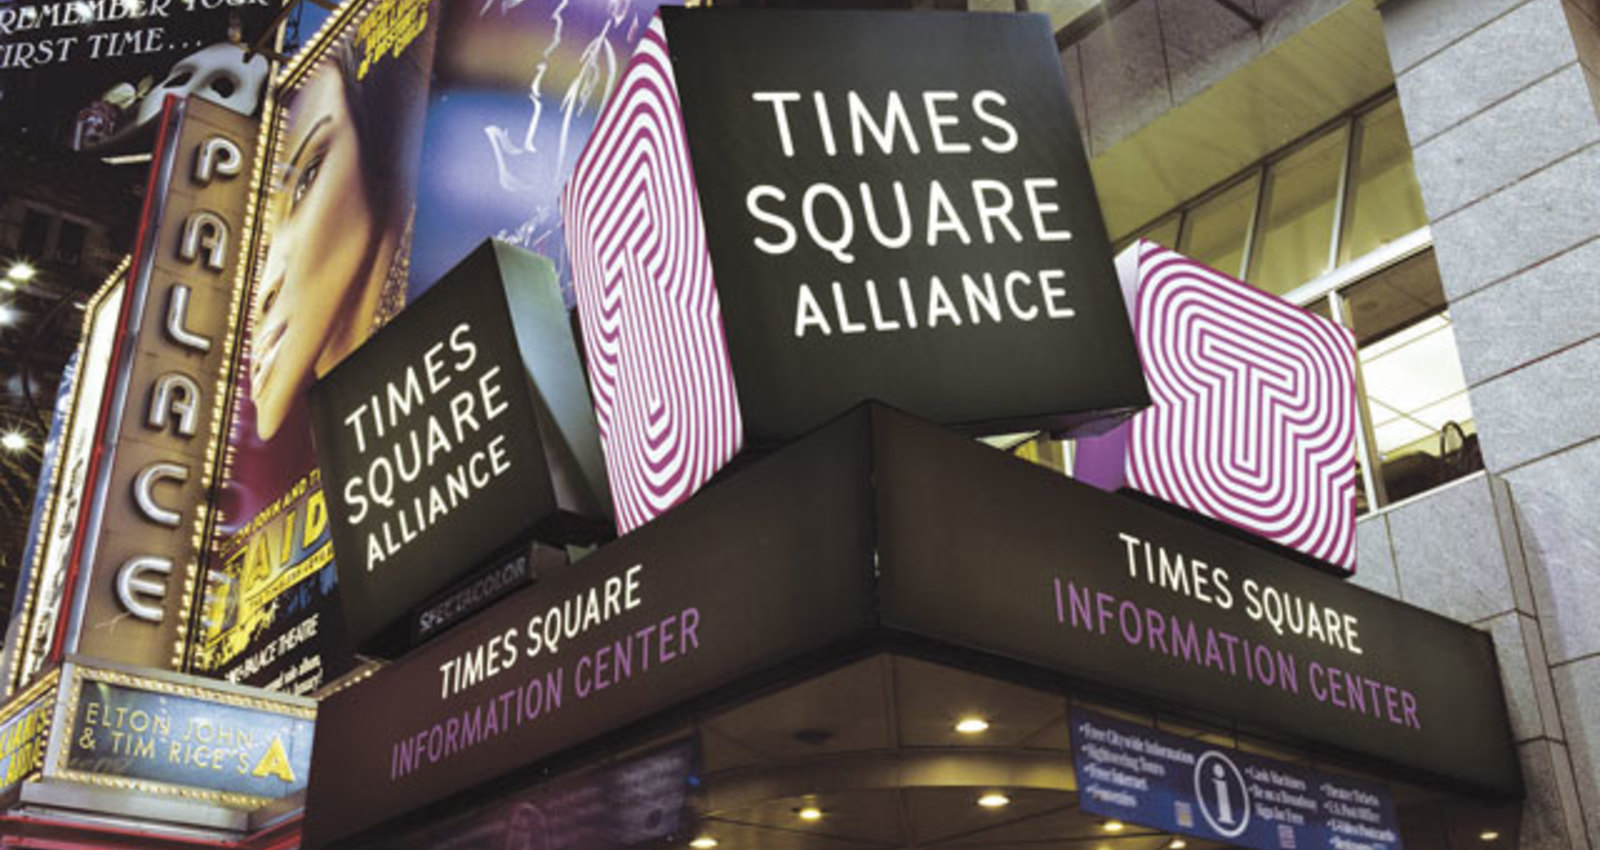 Times Square Alliance Identity